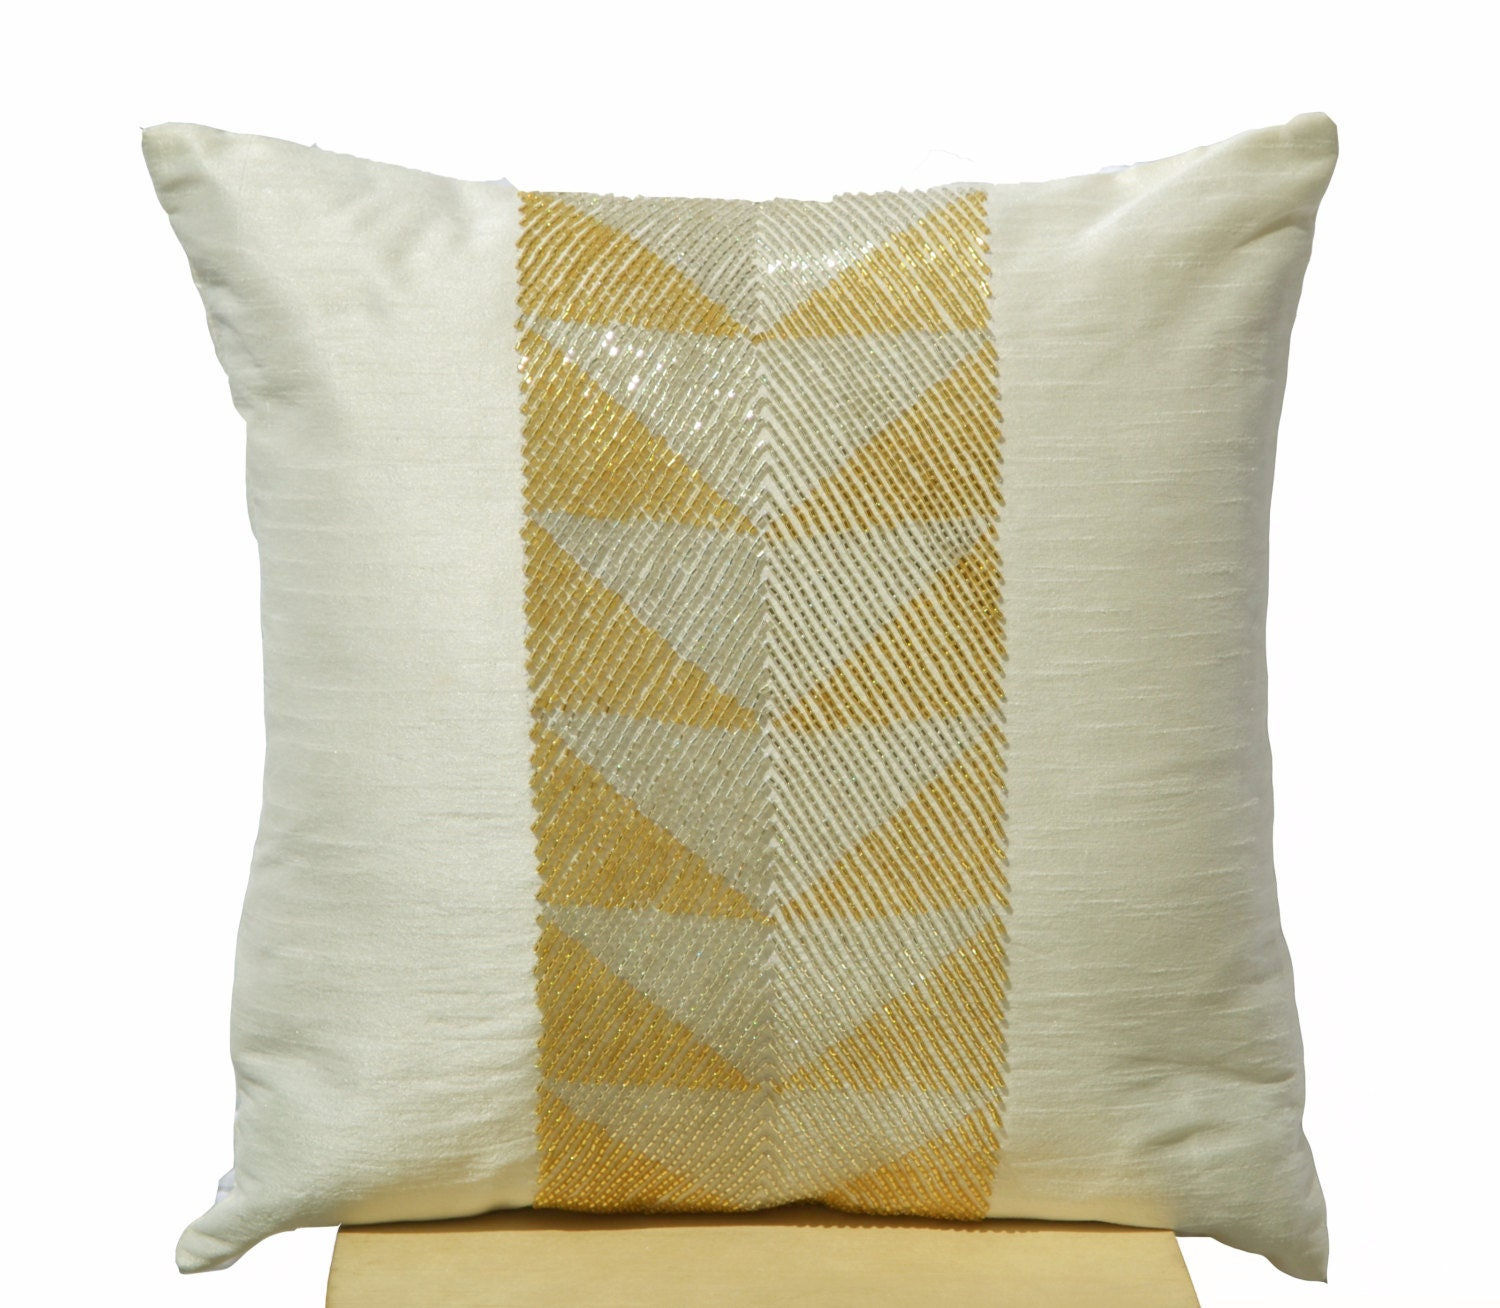 Decorative Pillow Ivory : Ivory white throw pillow with gilver geometric embroidery